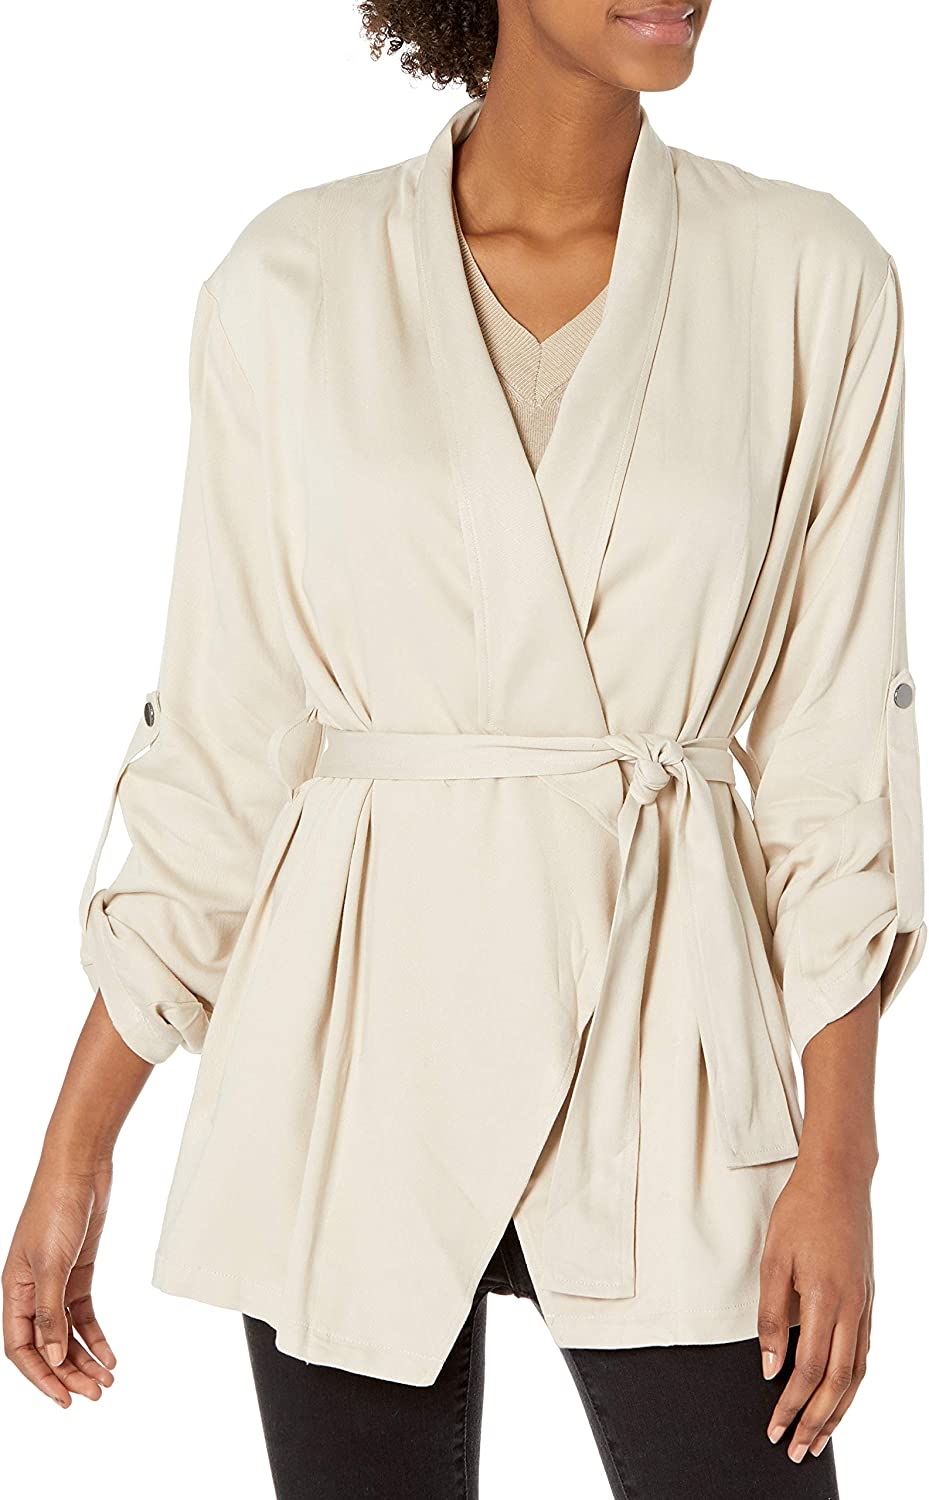 BB Dakota by Steve Madden womens Manufacturer direct delivery Out Ship Up Jacket Drape trend rank Or